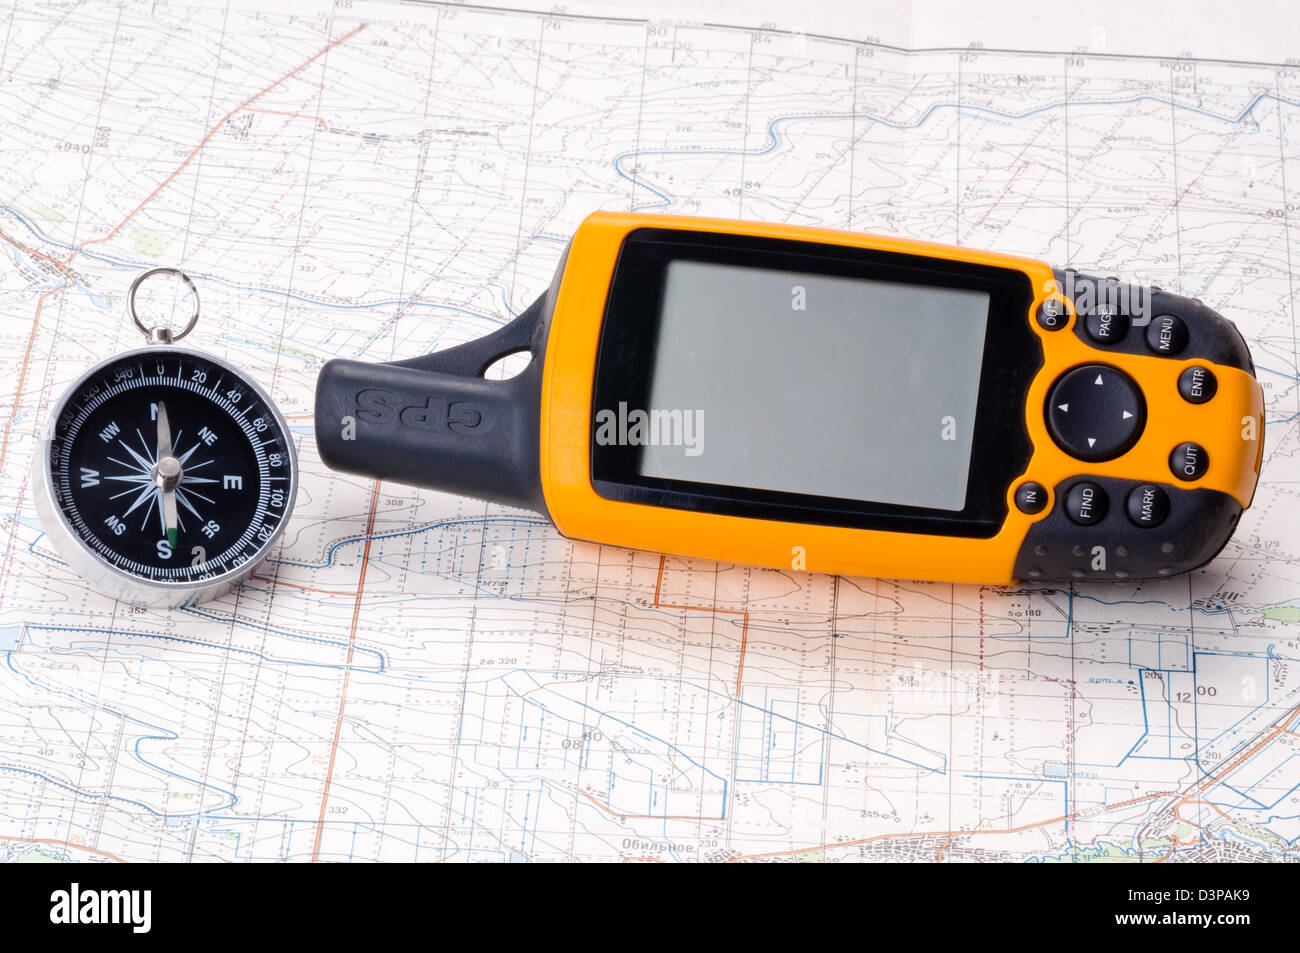 Compass and gps navigator on the map - Stock Image